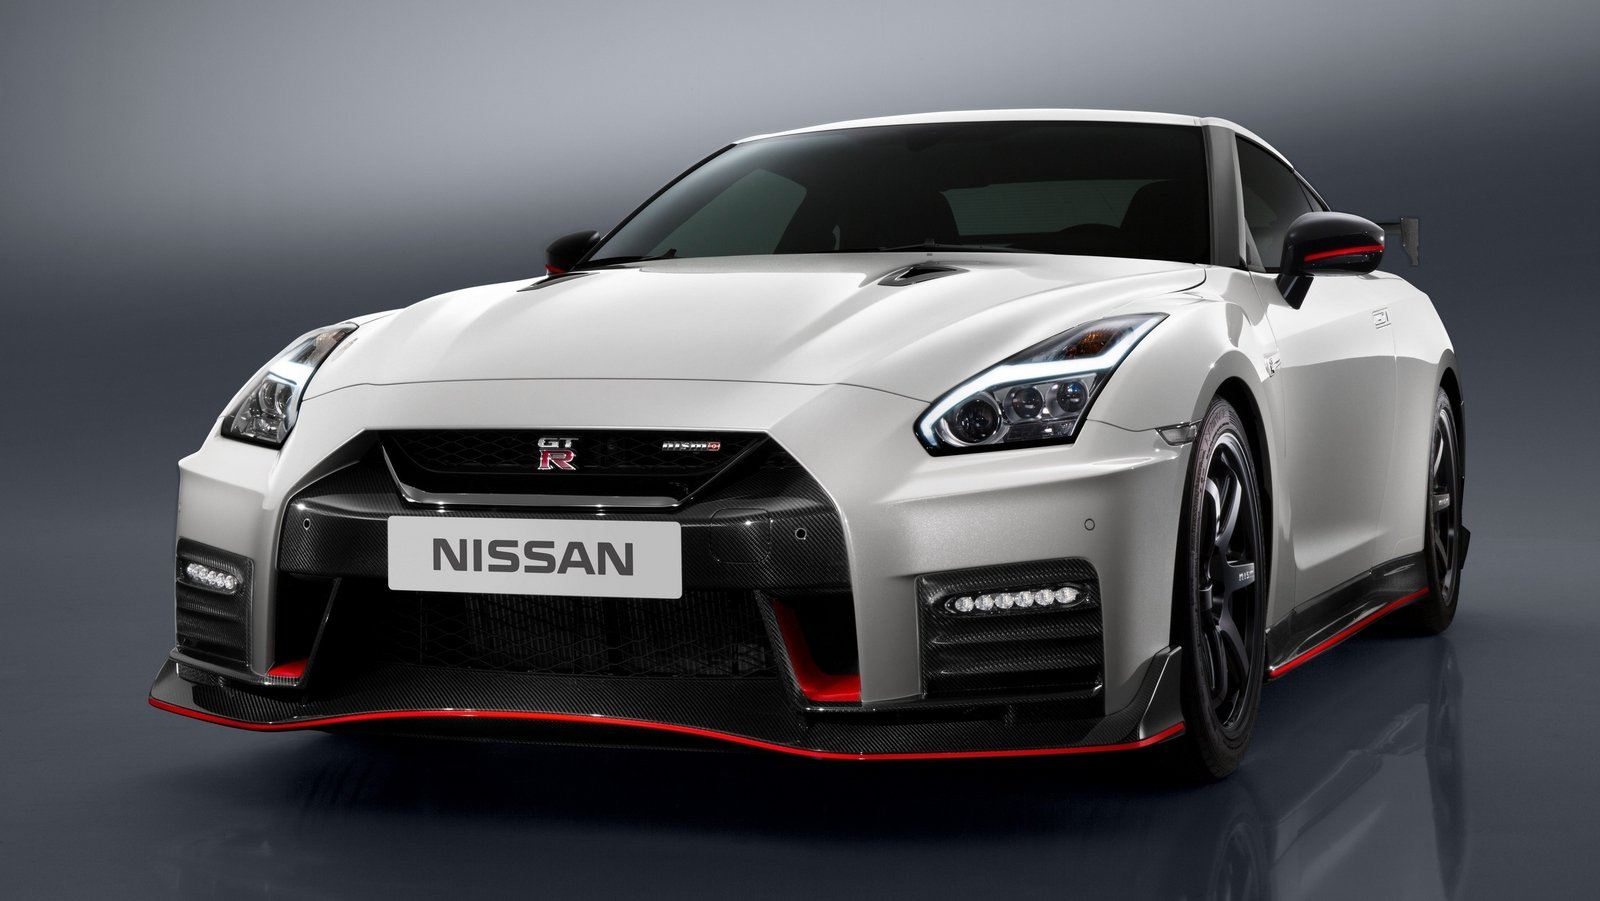 2017 nissan gt-r nismo review - top speed